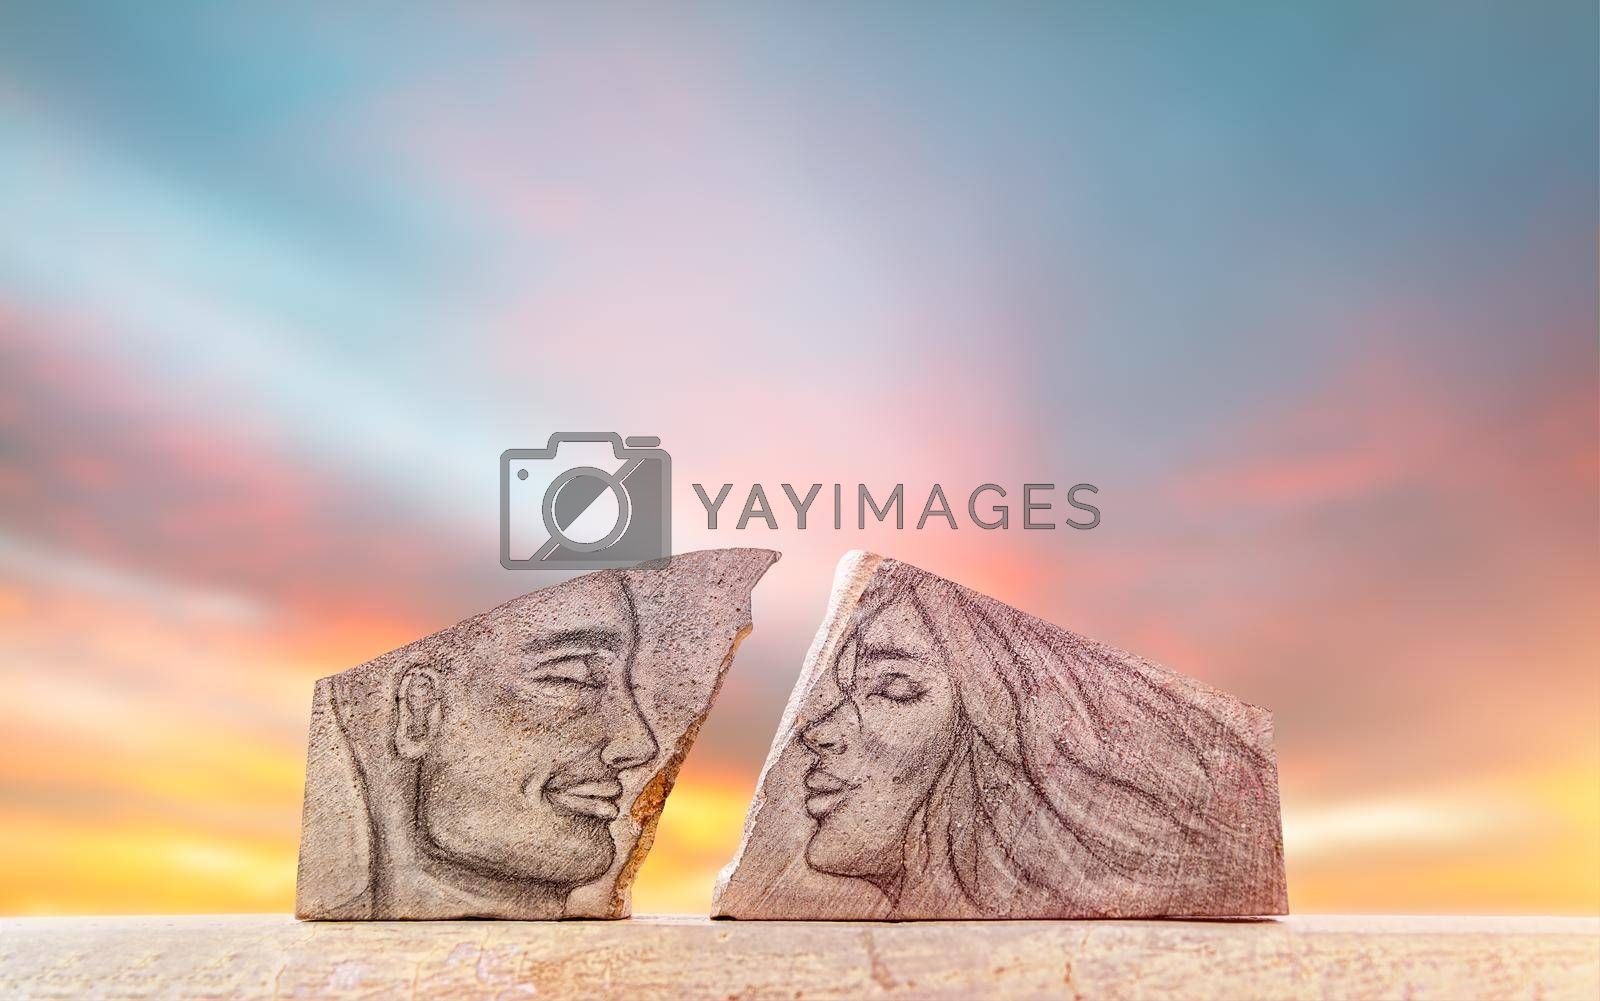 Royalty free image of Feelings of Love by Anna_Omelchenko